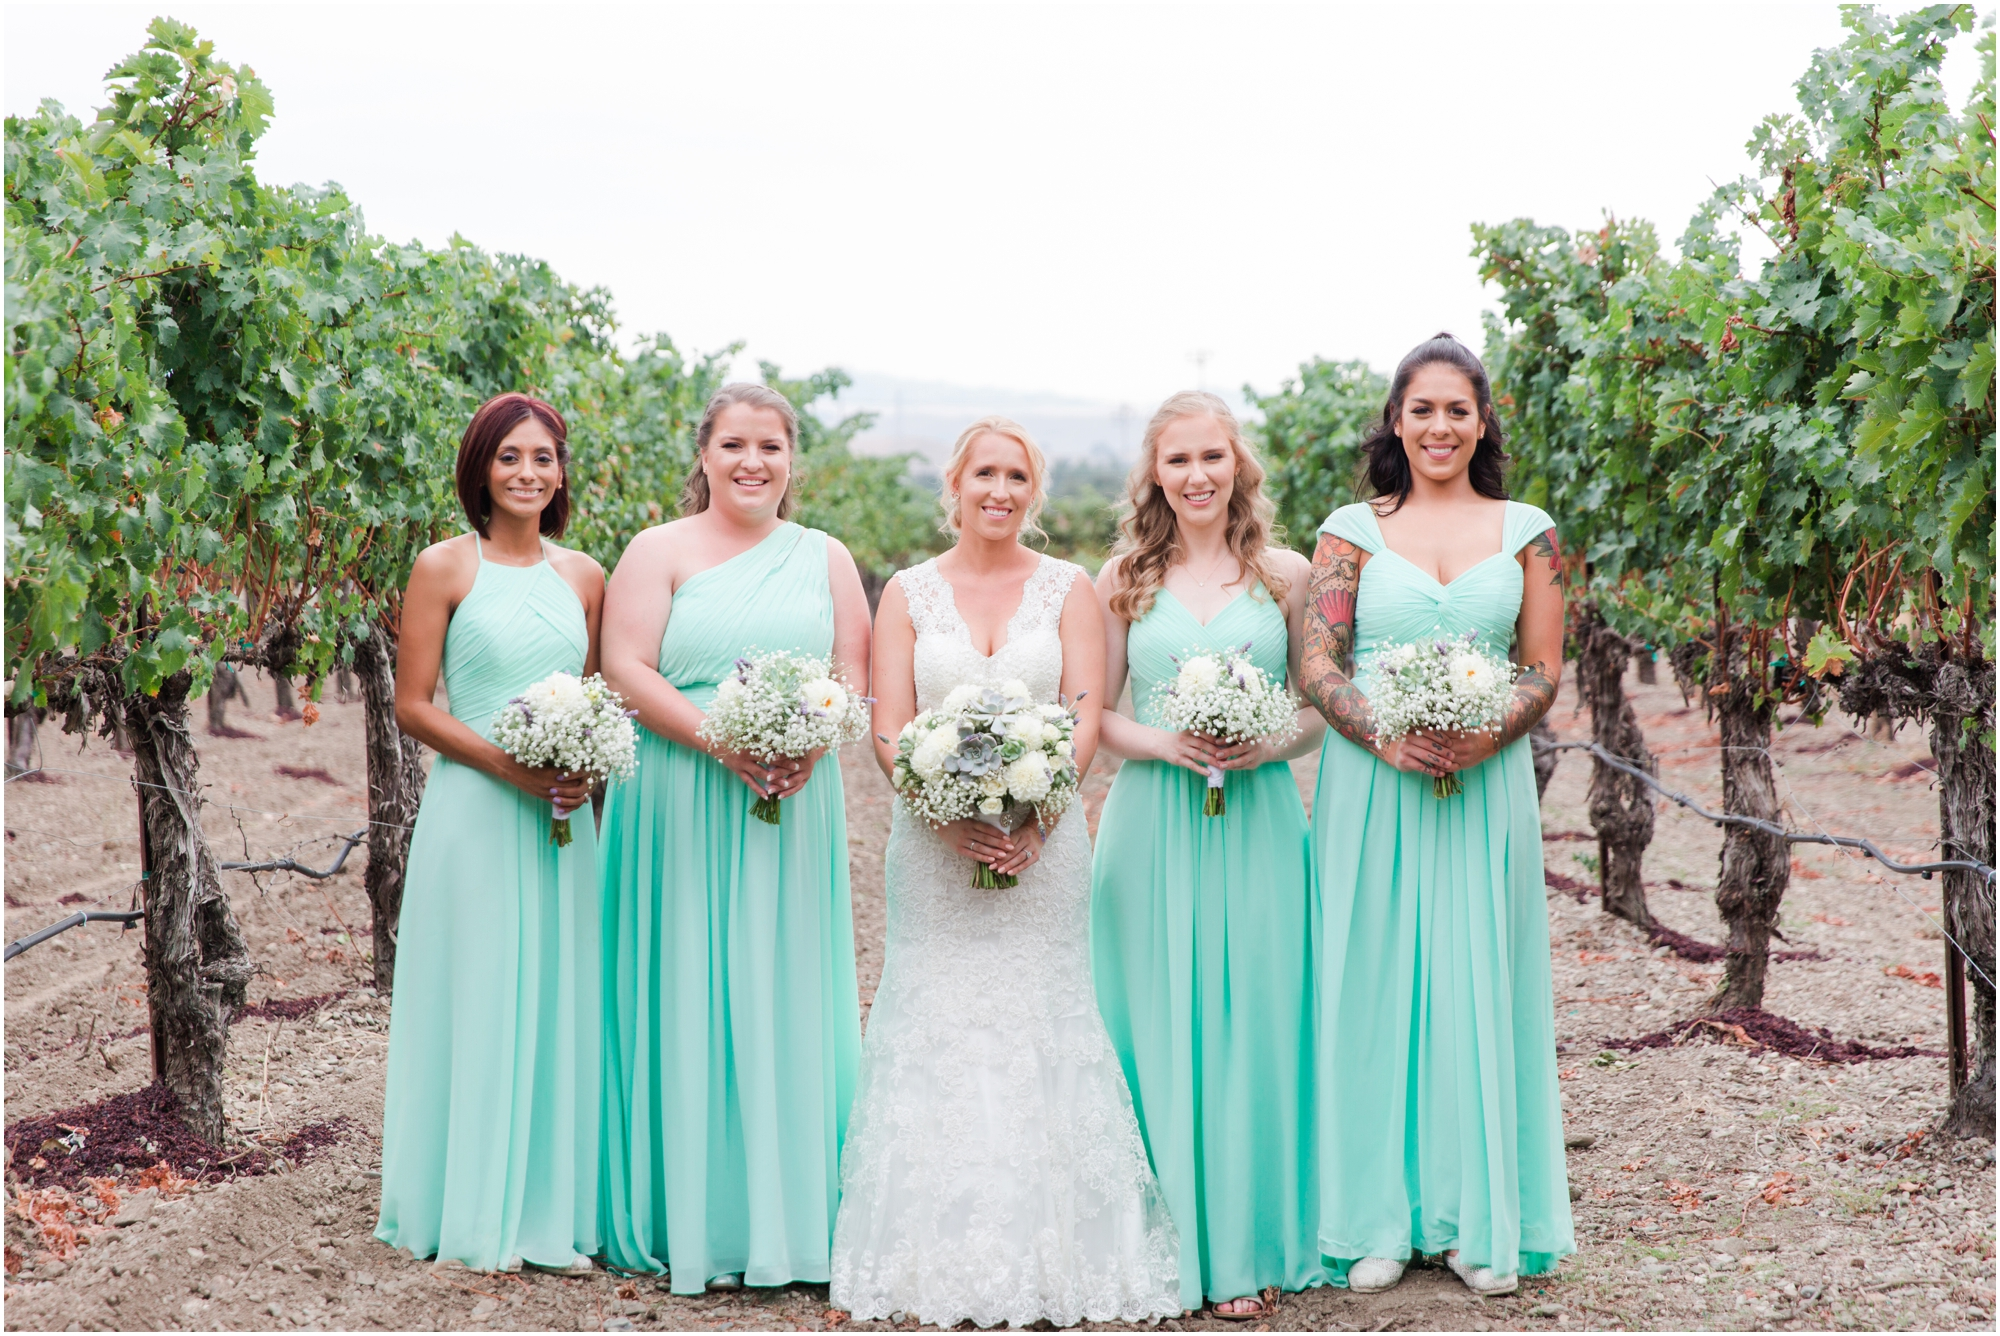 Retzlaff Winery wedding pictures by Briana Calderon Photography_2284.jpg